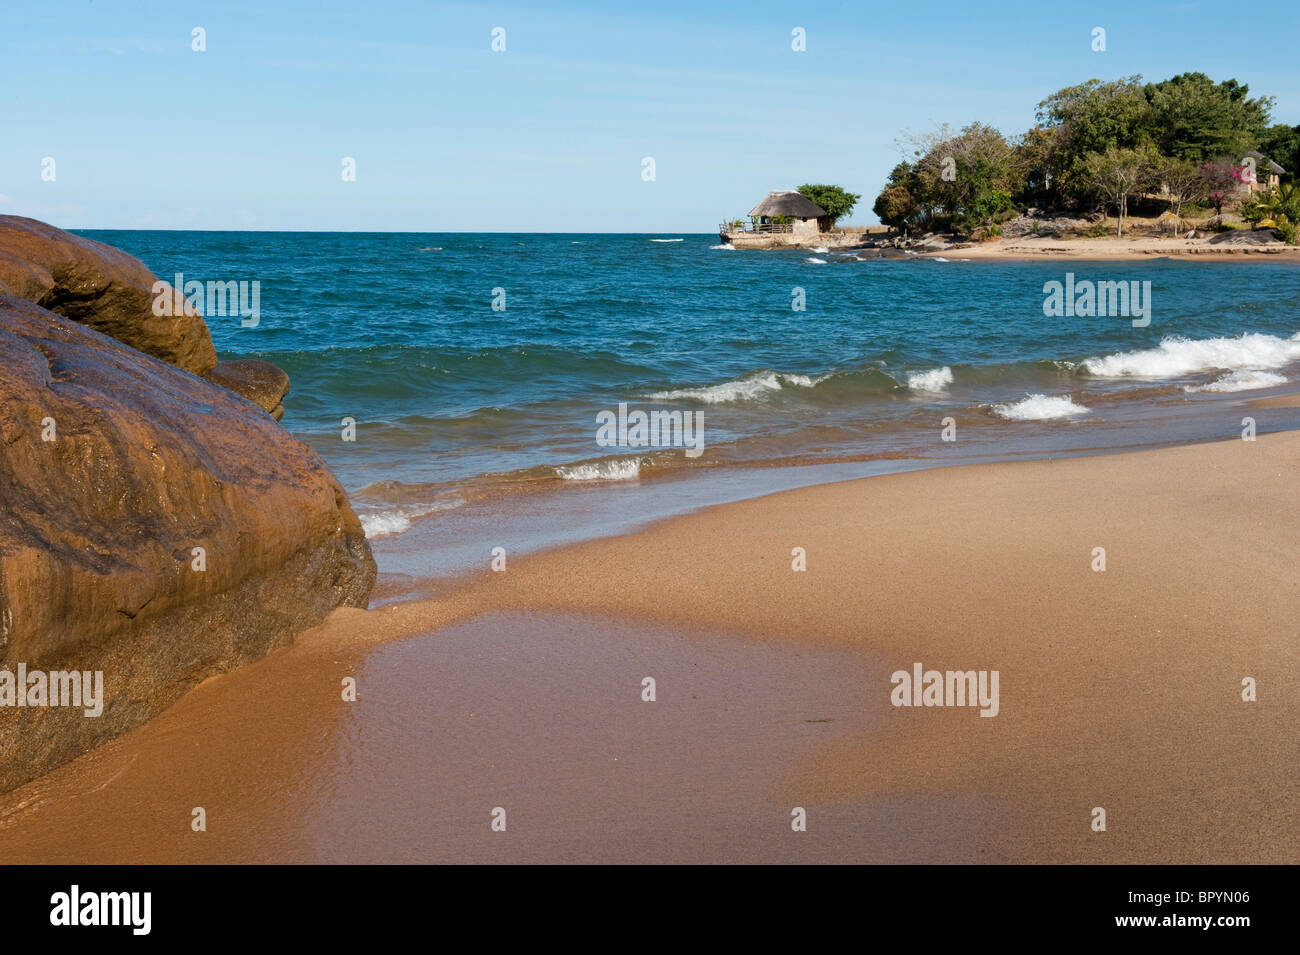 Beach, Chintheche, Malawi - Stock Image